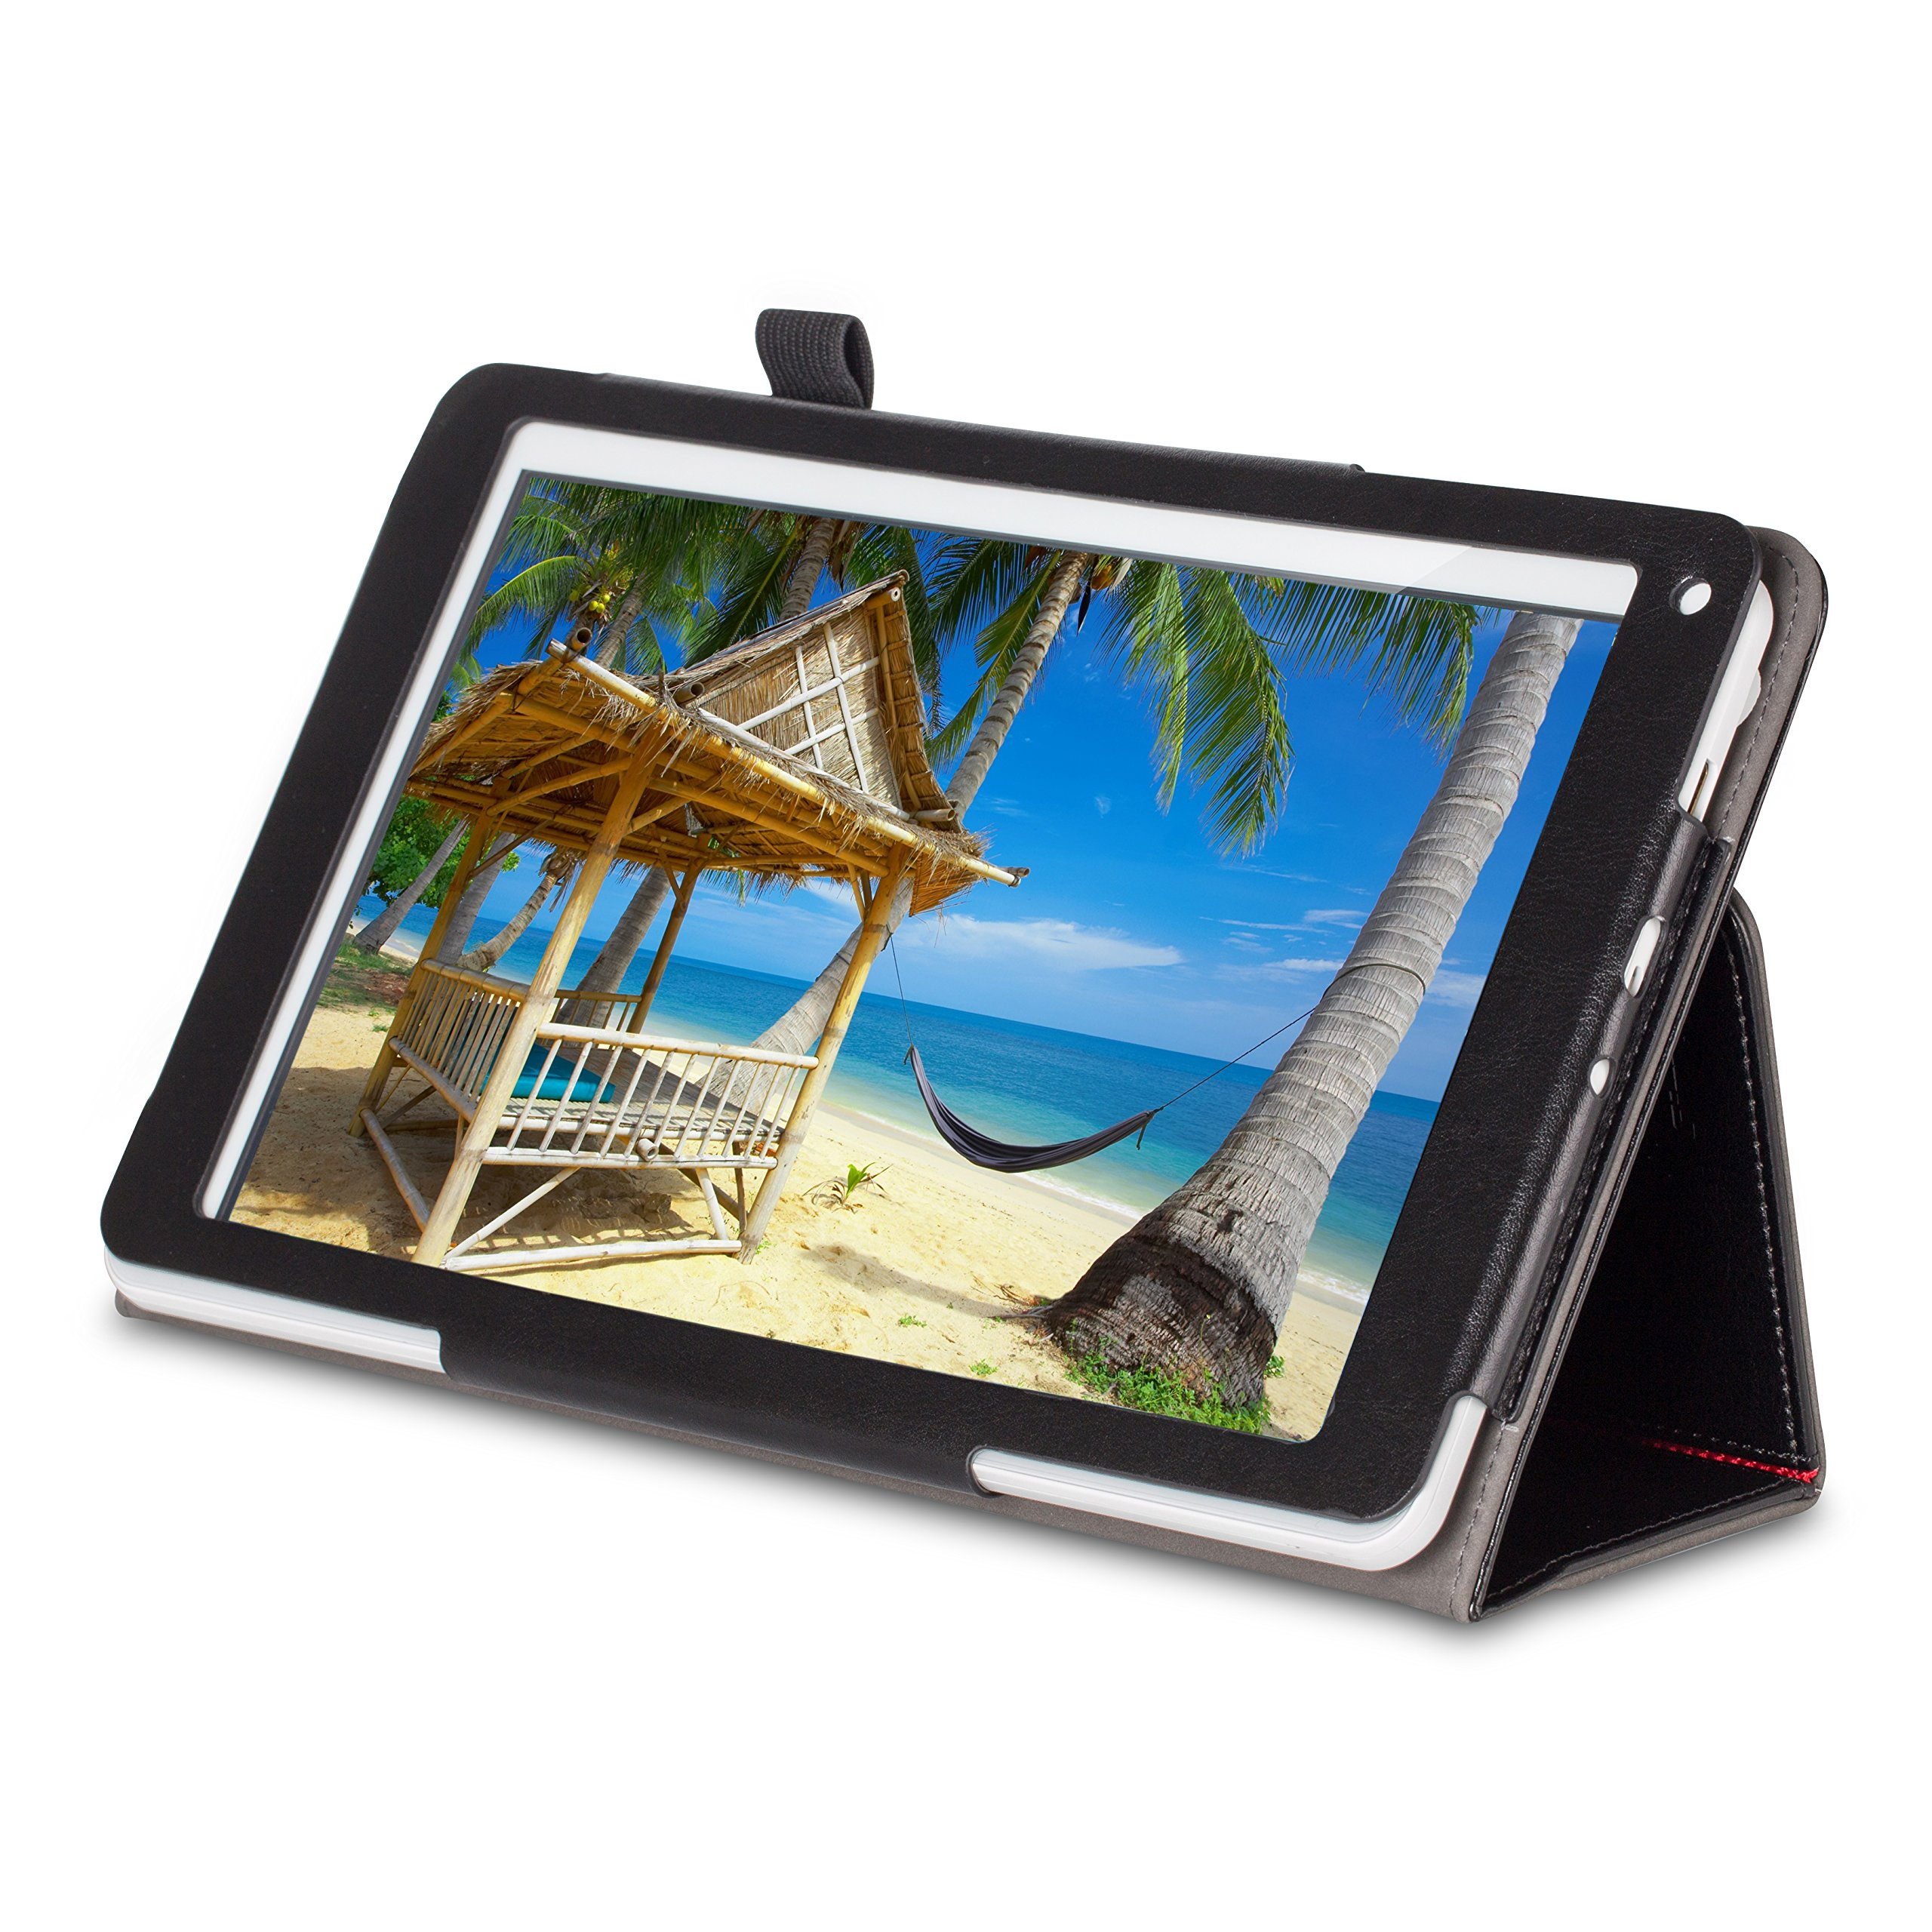 [3 Bonus items] Simbans Presto 10 inch tablet Android tablet computer 10.1 inch IPS screen, Quad Core, HDMI, Tablet PC, 2+5 MP Camera, GPS, WiFi, USB, Bluetooth (1GB RAM and 32GB Disk) by Simbans